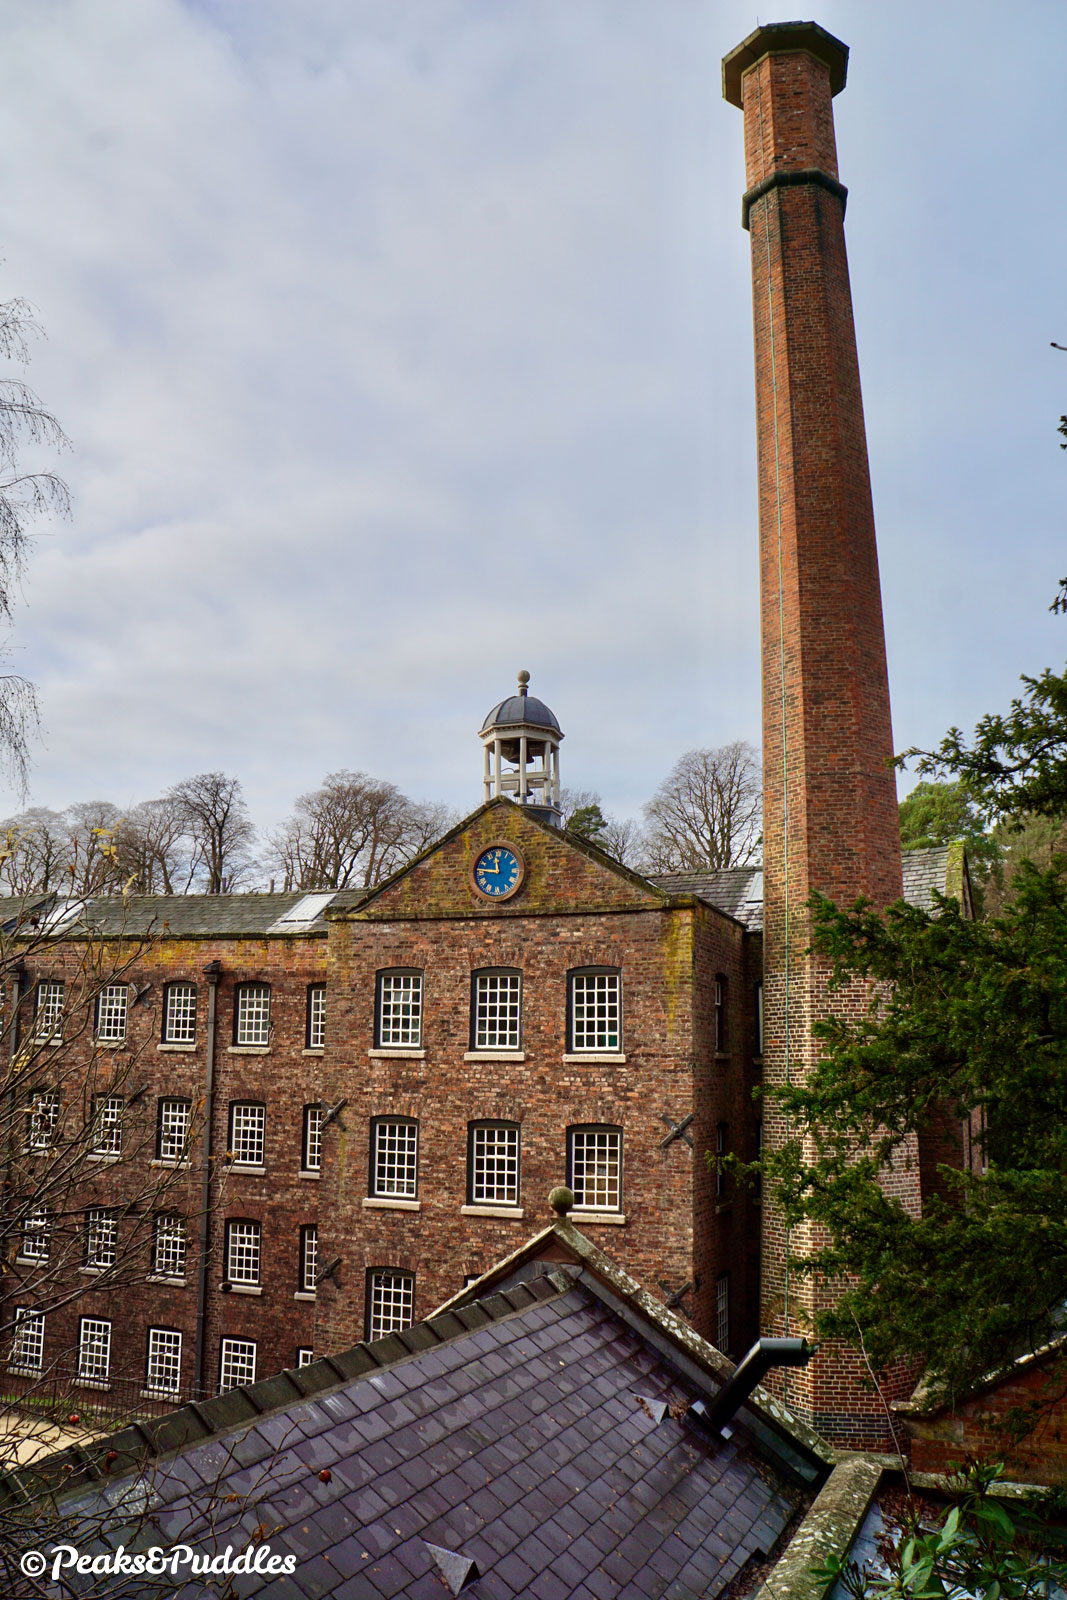 Quarry Bank Mill itself can be viewed for free, from the outside at least, from the byway which passes straight through the mill's land.